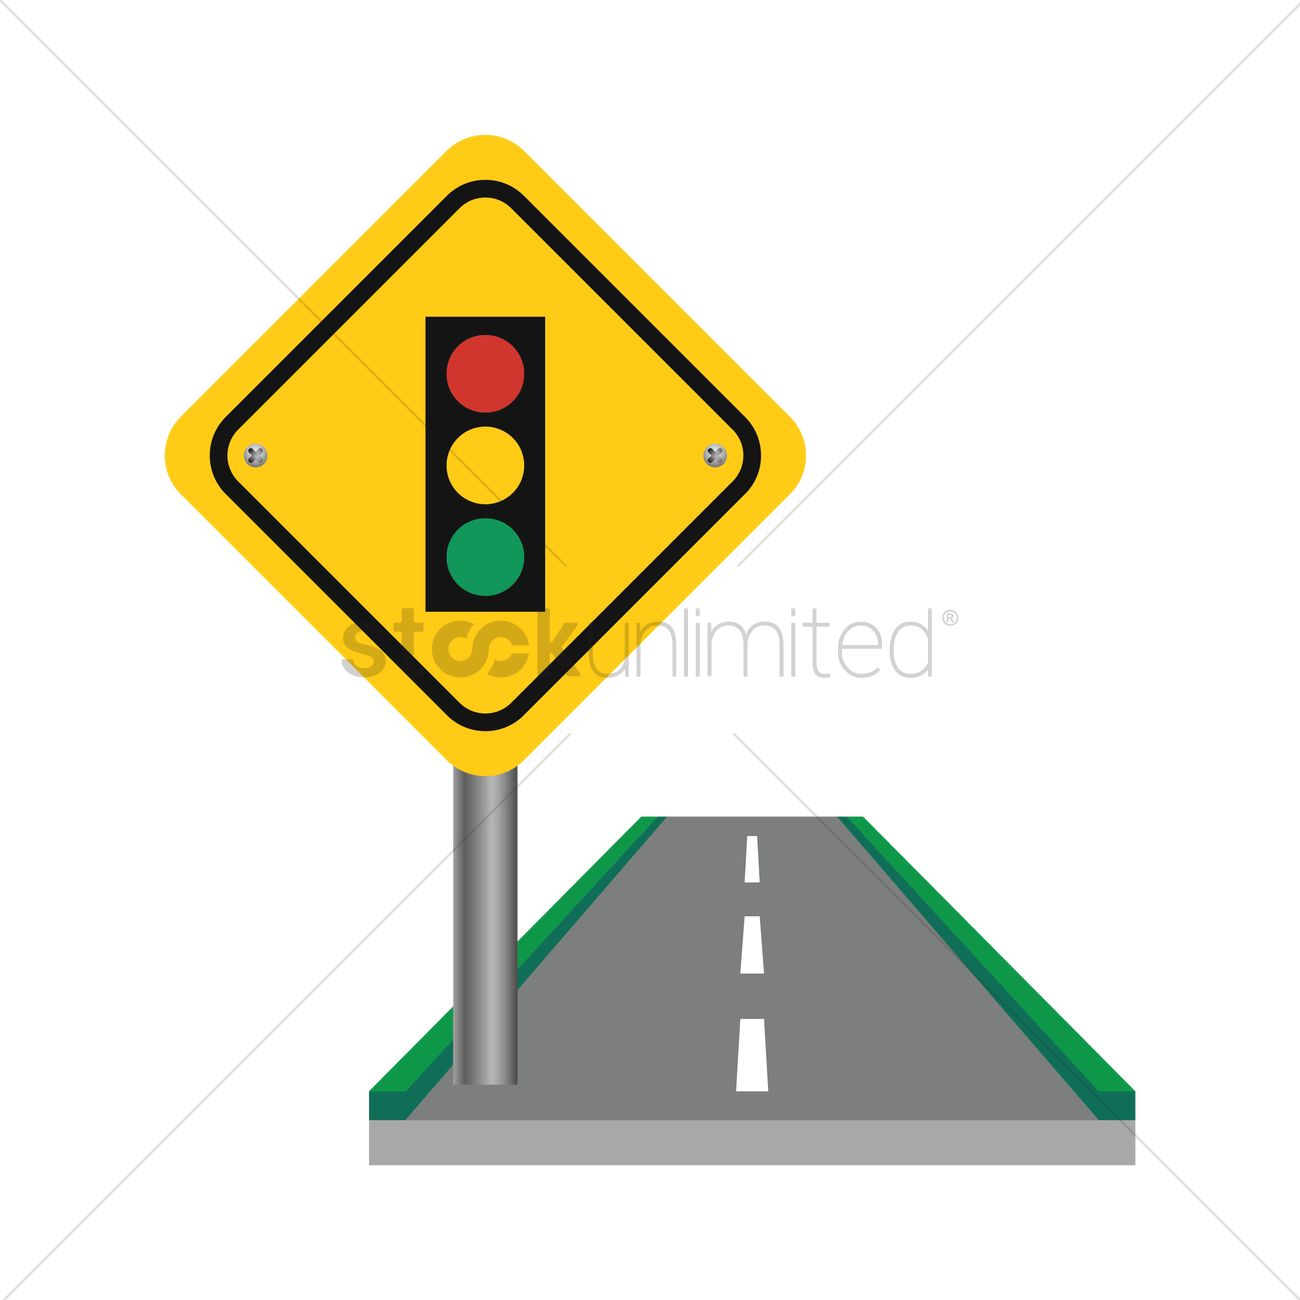 Traffic Signal Ahead Sign Vector Image 1544740 Stockunlimited